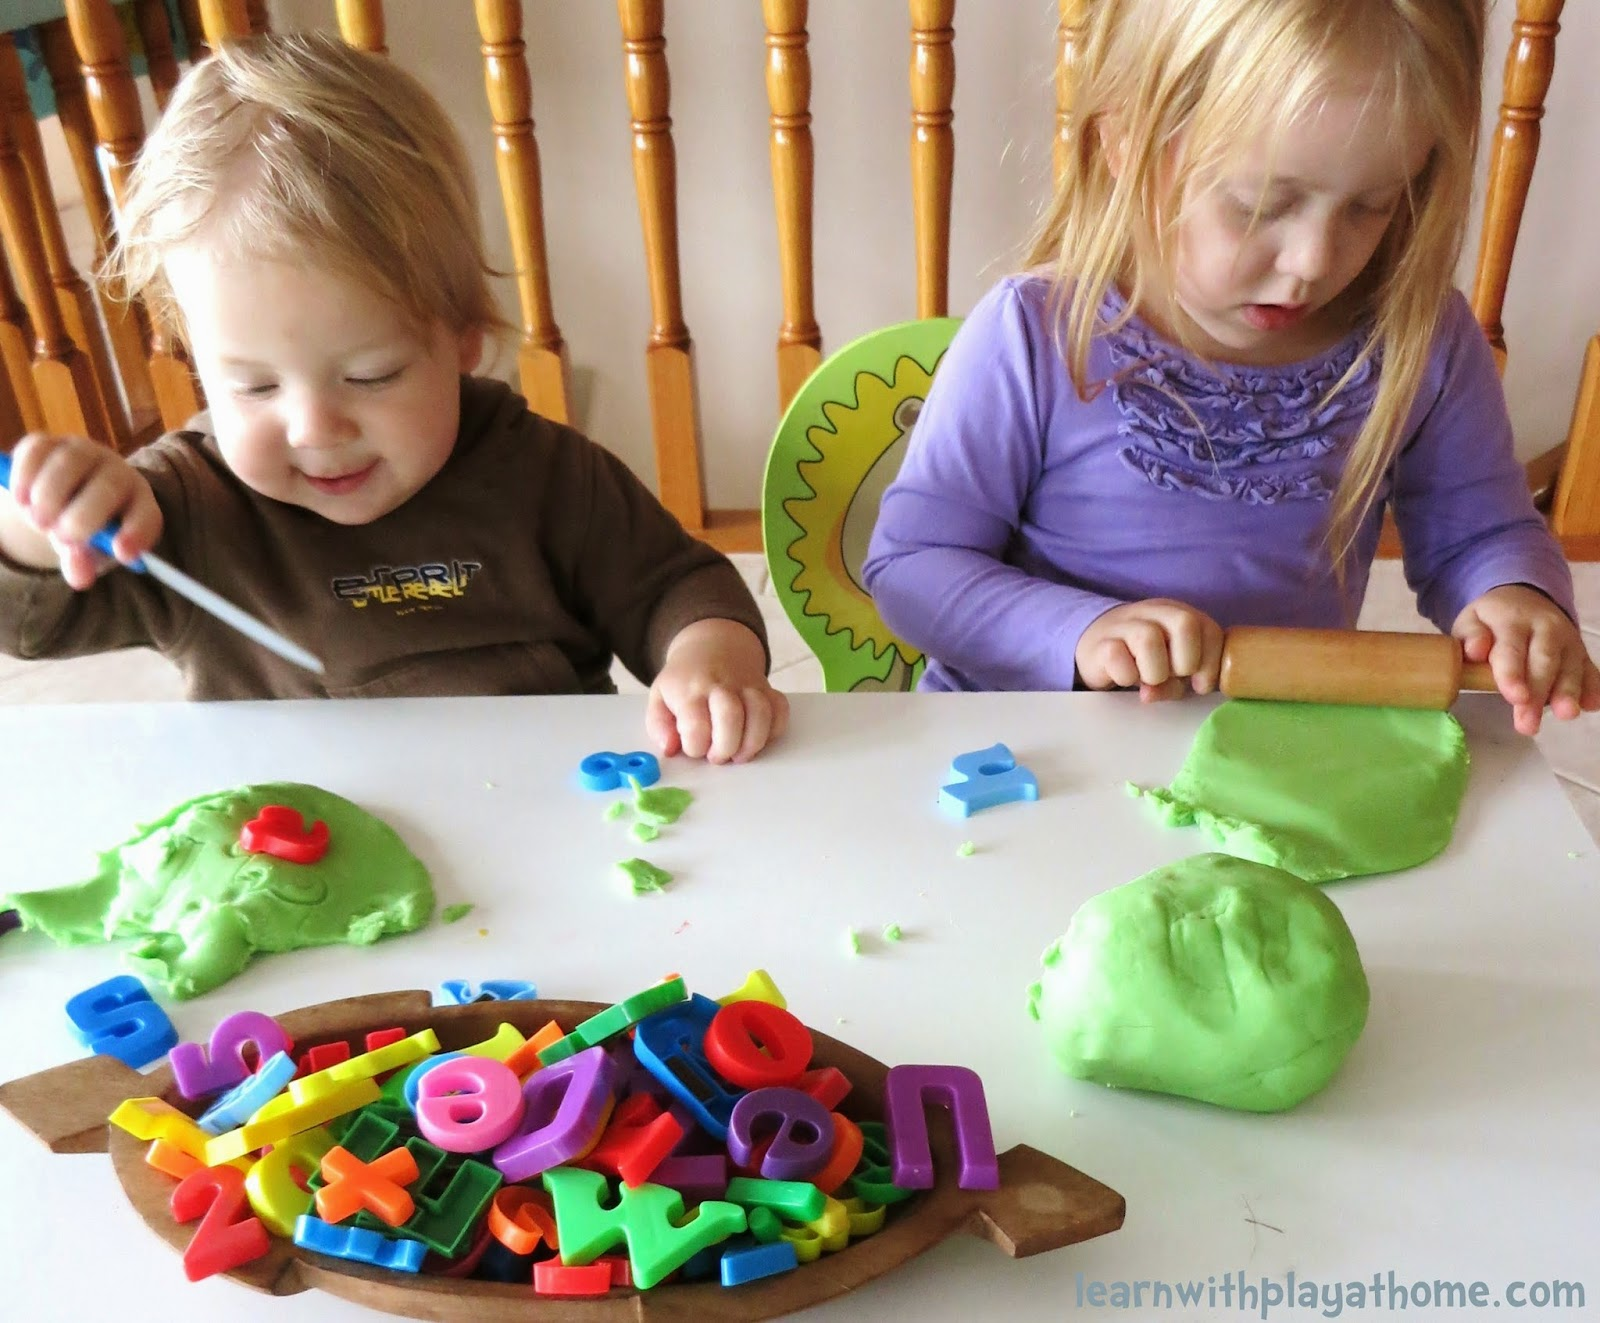 Learn With Play At Home Invitation To Play And Learn With Playdough And Magnetic Letters